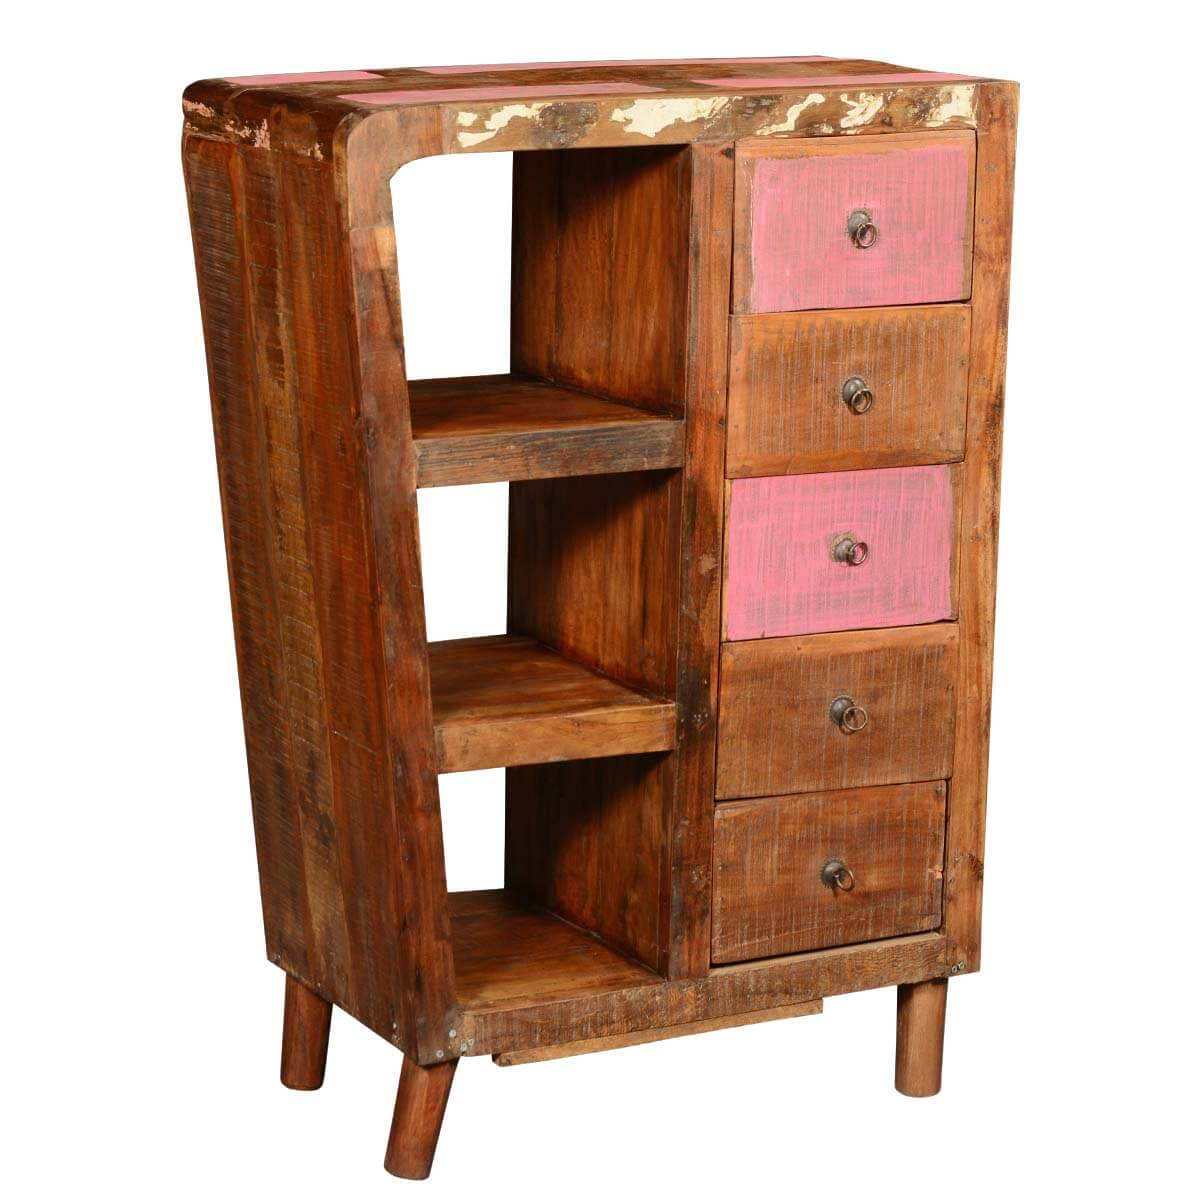 wood storage cabinets rustic reclaimed wood 5 drawer storage cabinet w display 29419